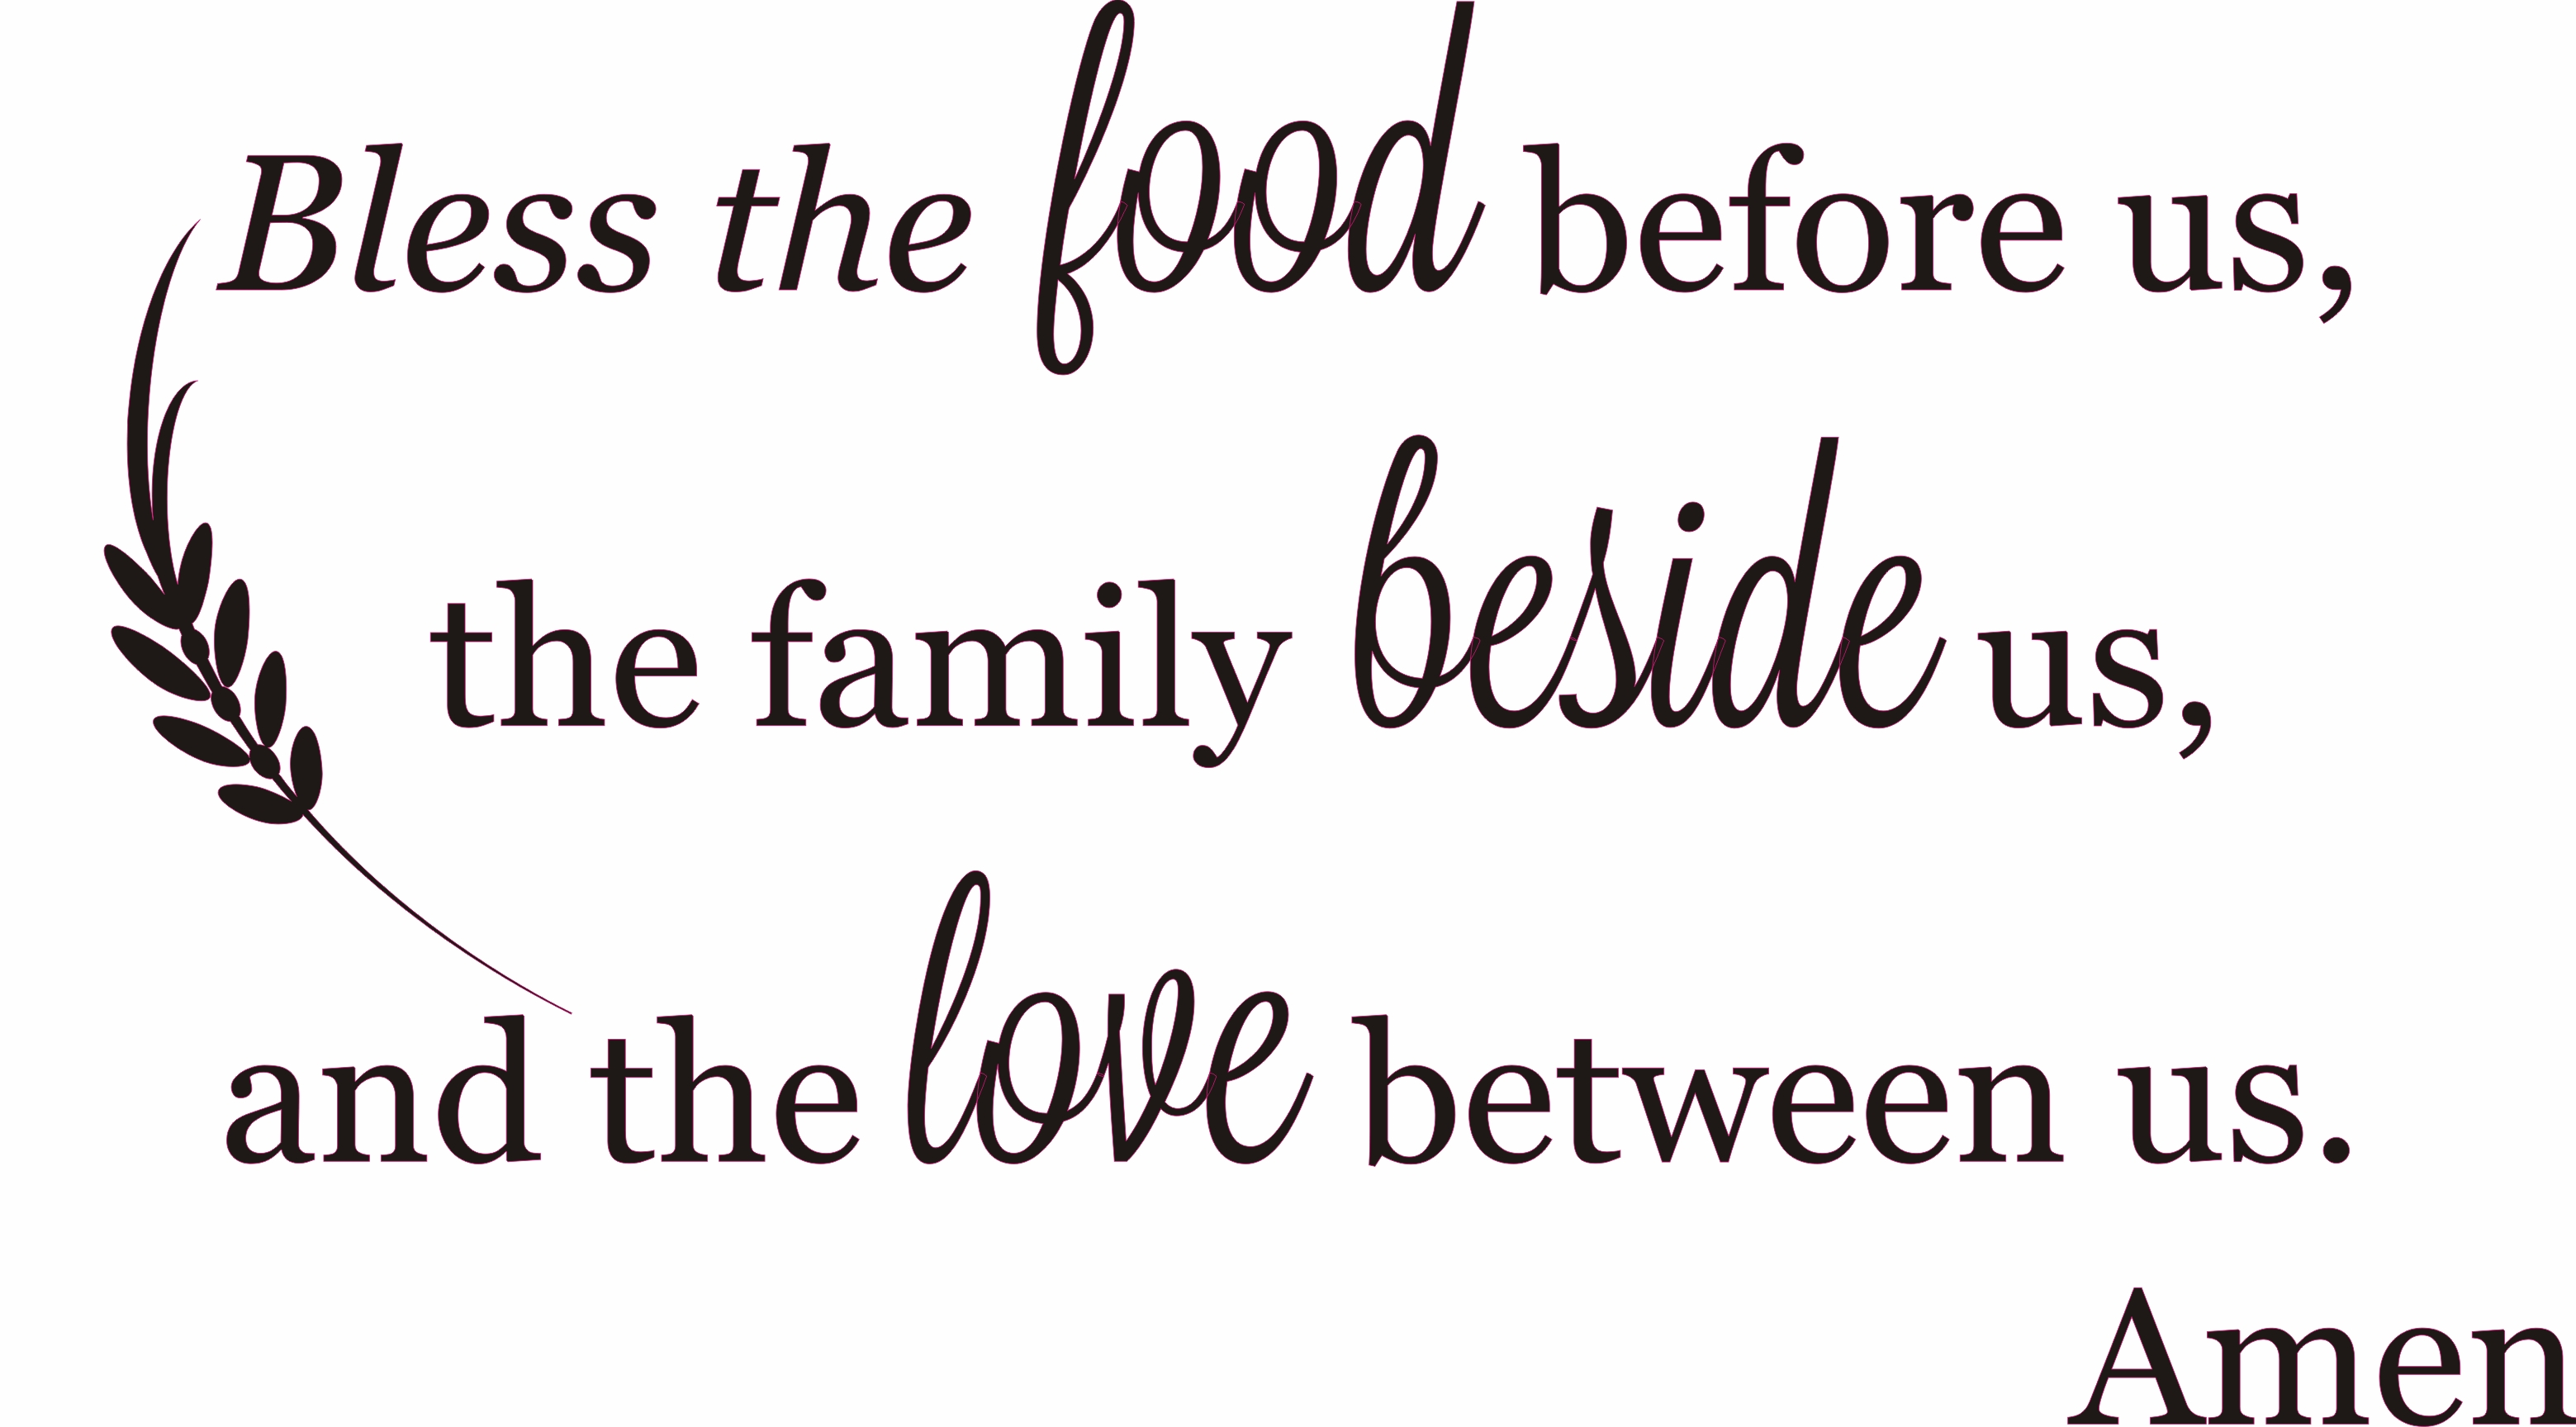 image relating to Bless the Food Before Us Printable identify Bless The Foodstuff Involving Us The Relatives Beside Us The Enjoy In between Us